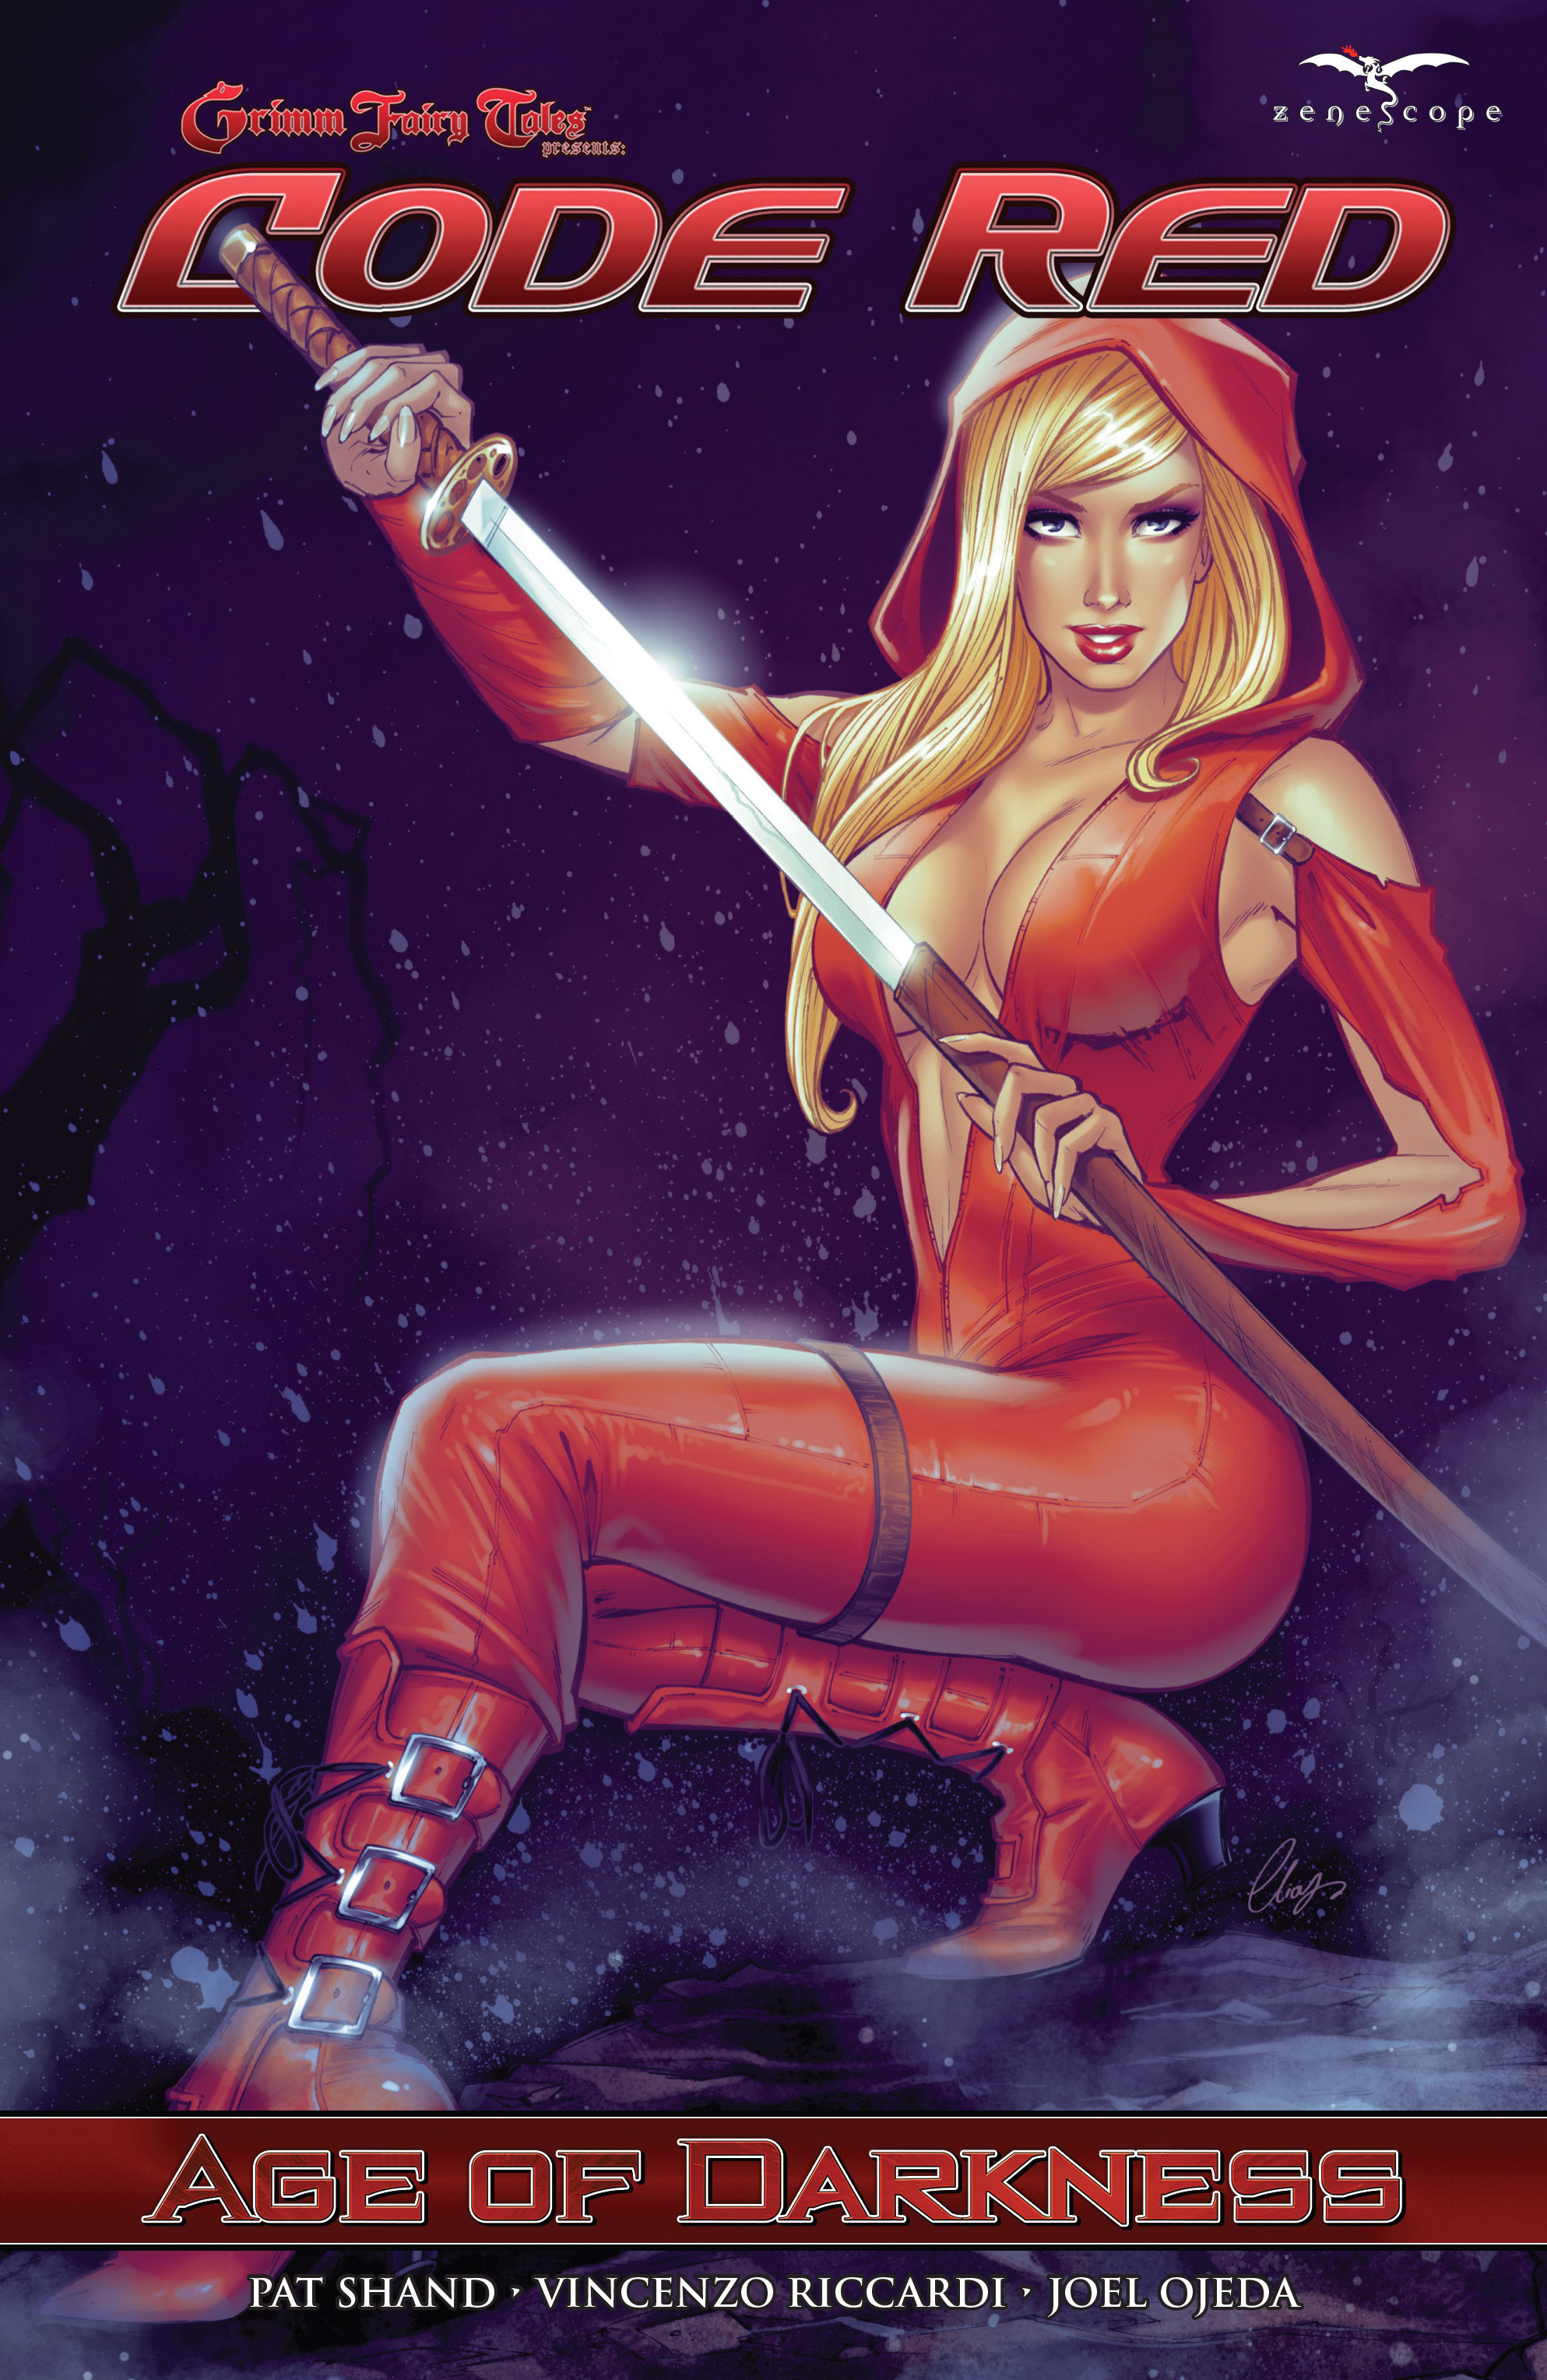 Read online Grimm Fairy Tales presents Code Red comic -  Issue # TPB - 1